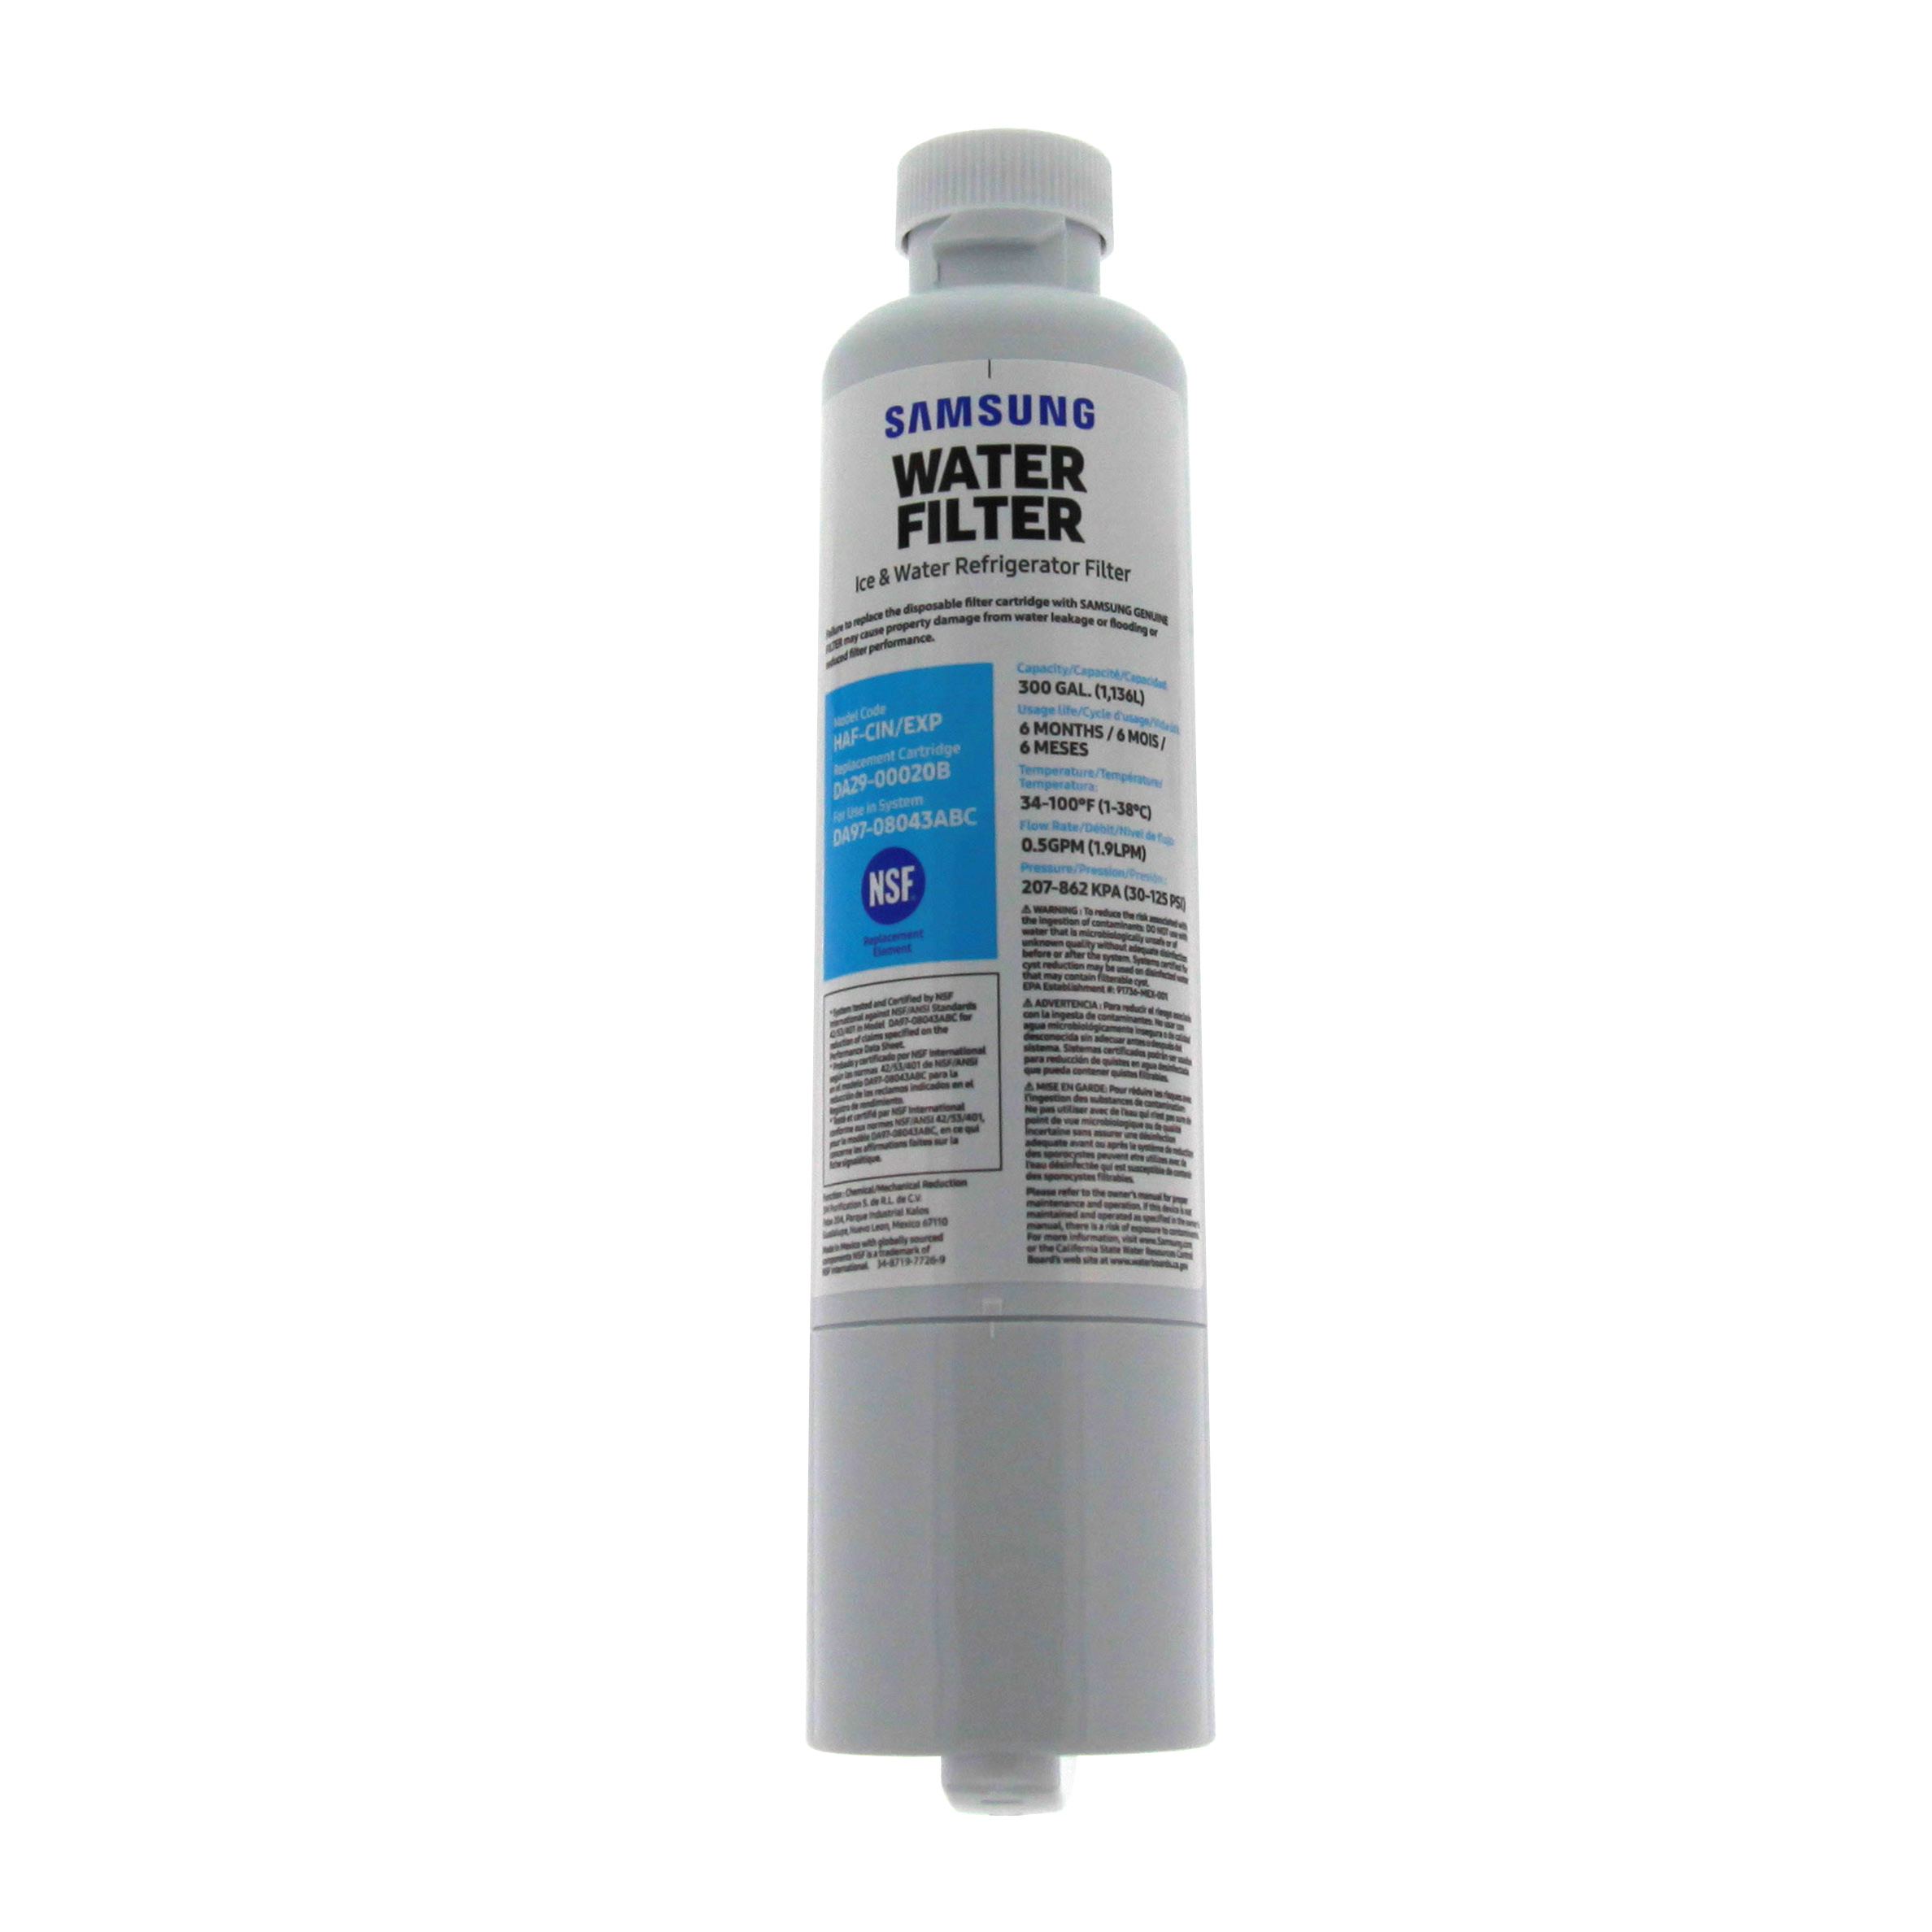 samsung water filter samsung da29 00020b aqua plus haf cin exp refrigerator water filter 36725569768 ebay